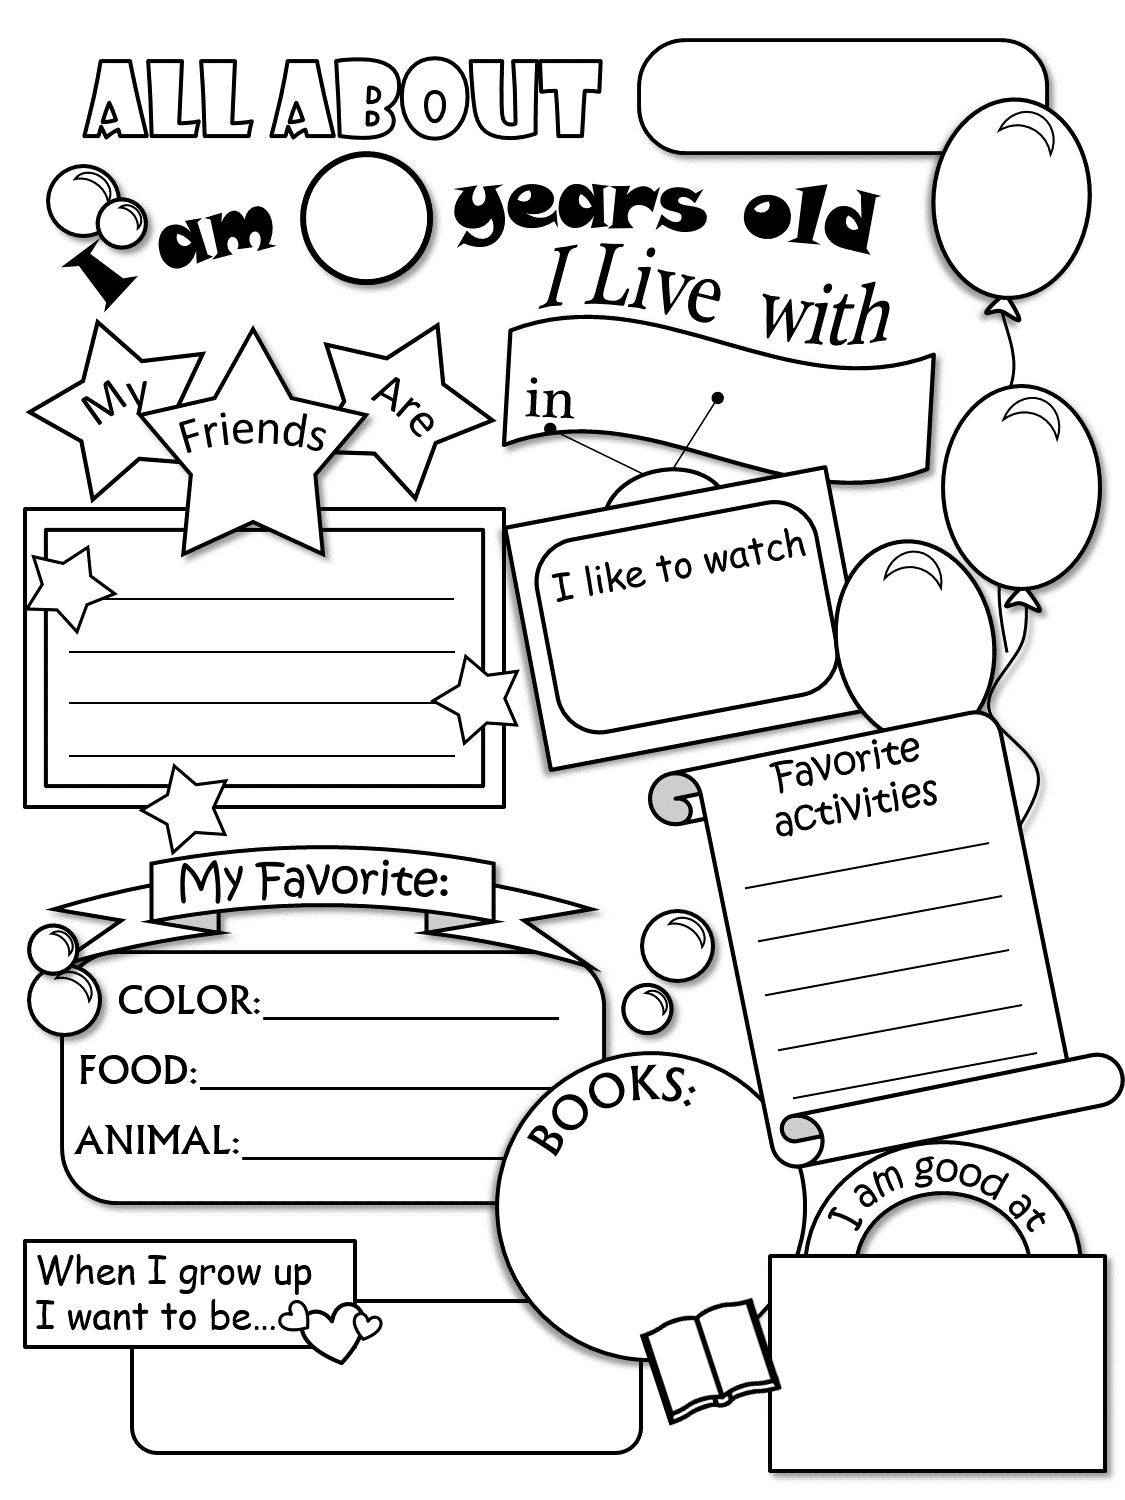 Free Printable Worksheet All About Me - Intrepidpath